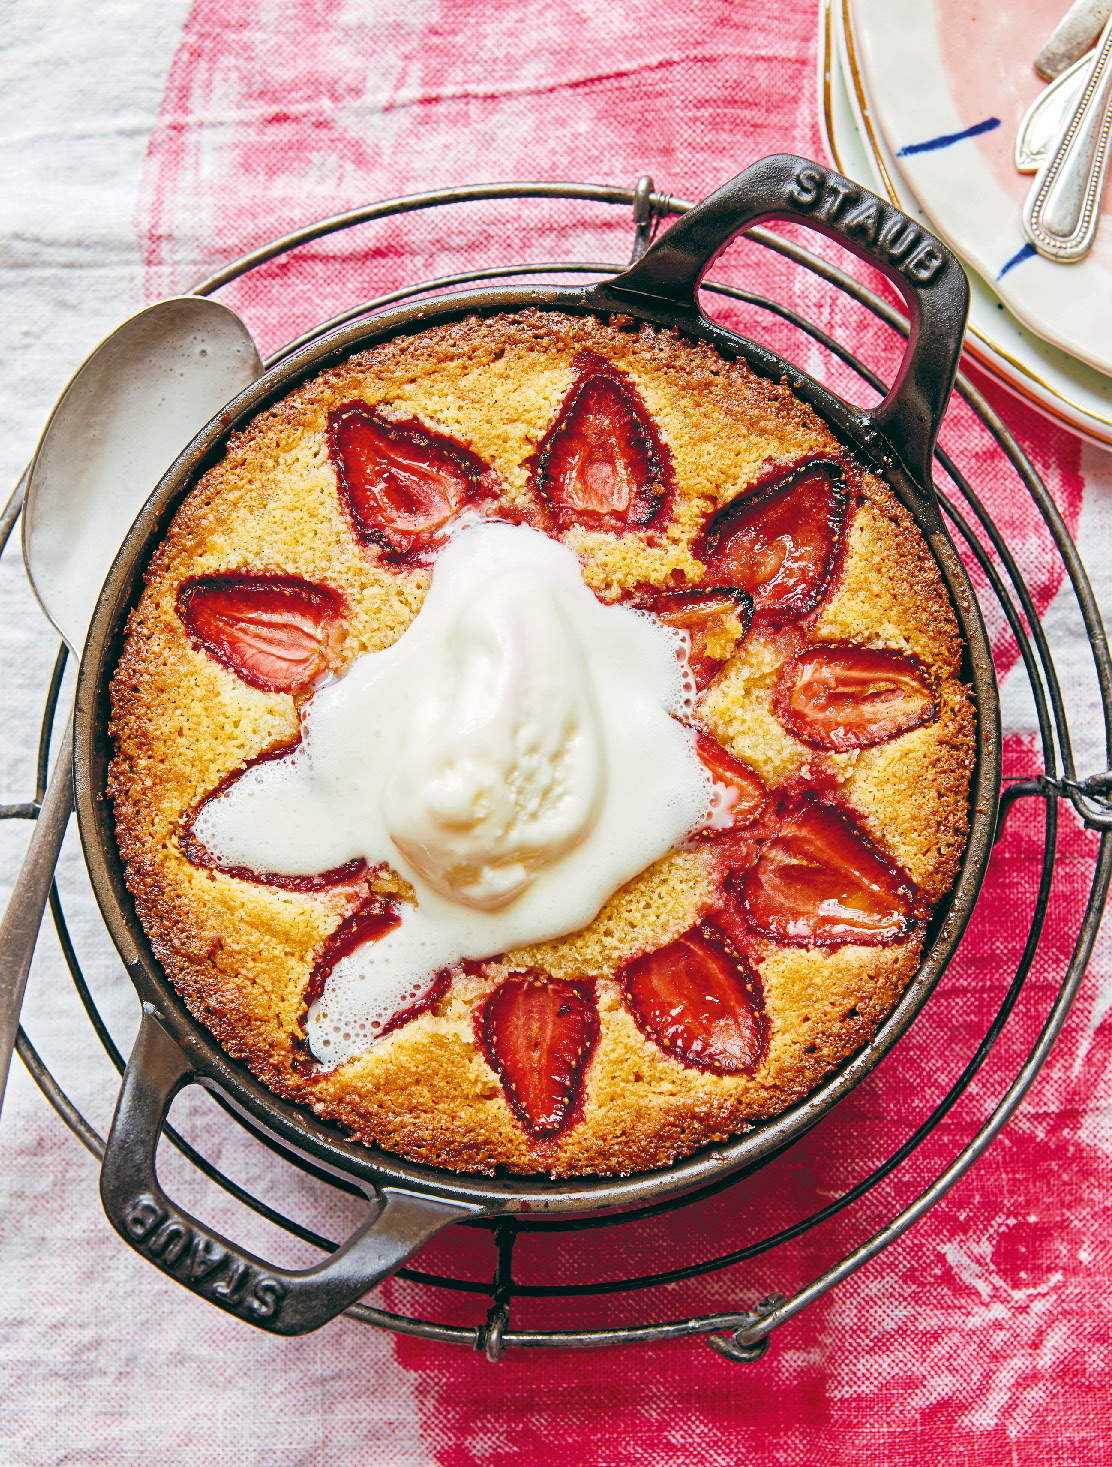 Strawberry frangipane tart